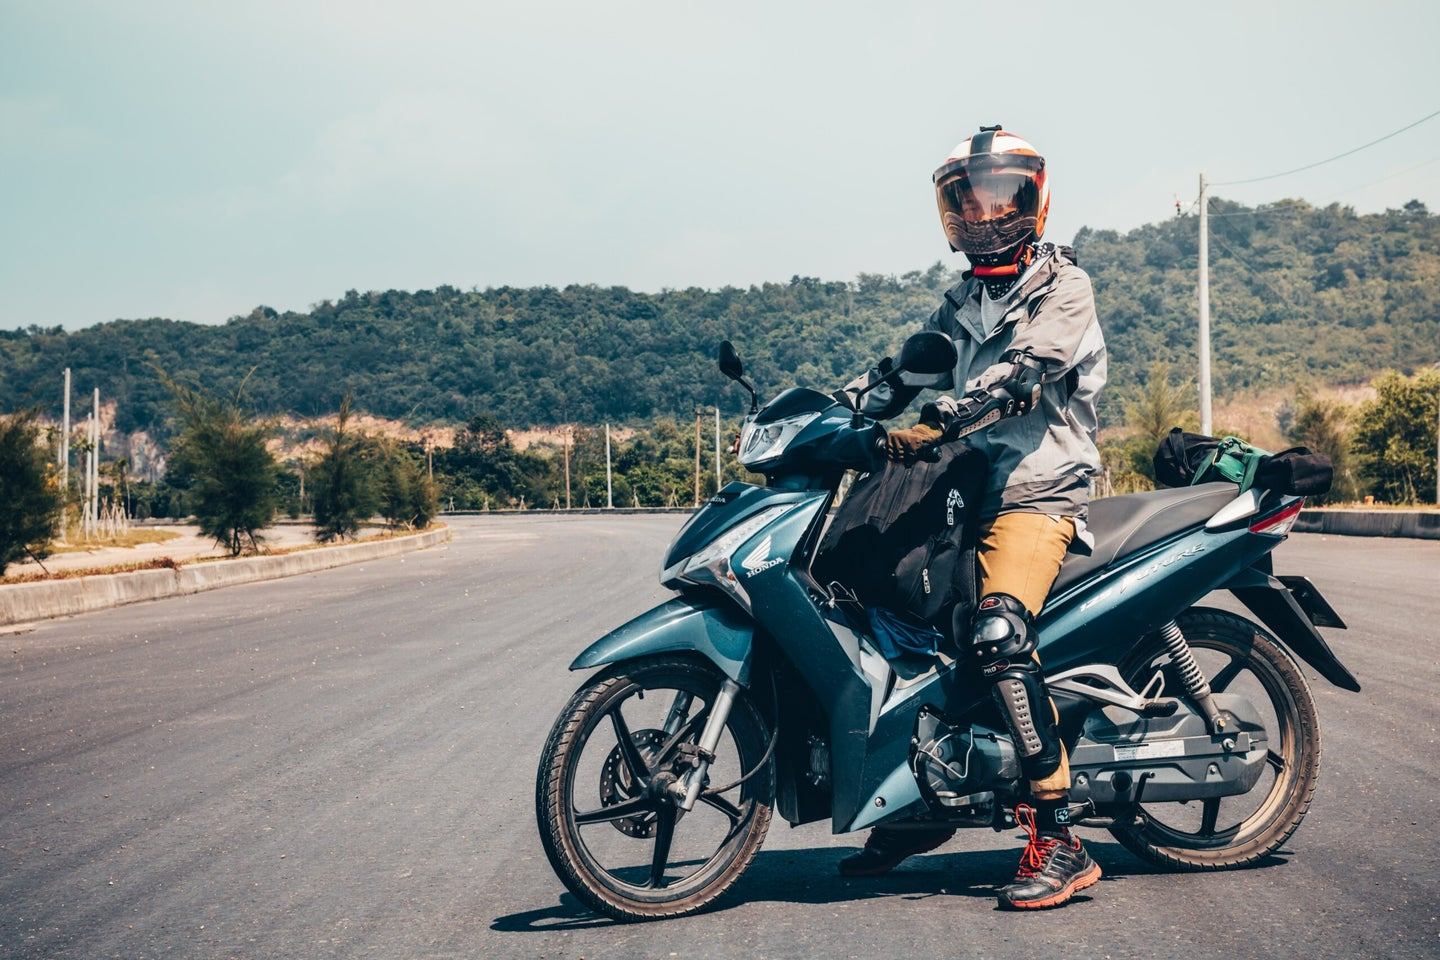 motorcycle gadgets for under $40